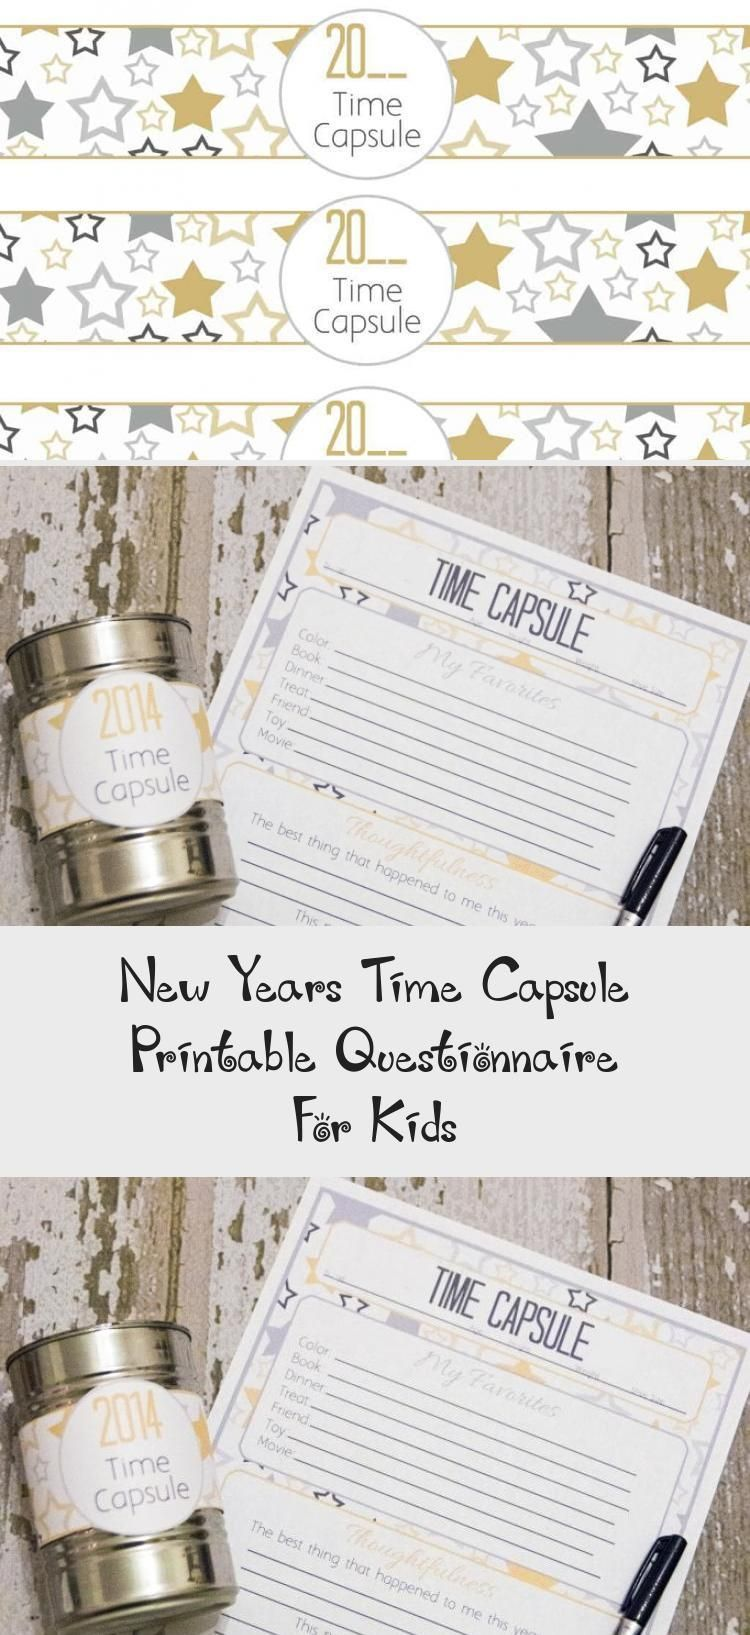 New Years Time Capsule Printable Questionnaire For Kids